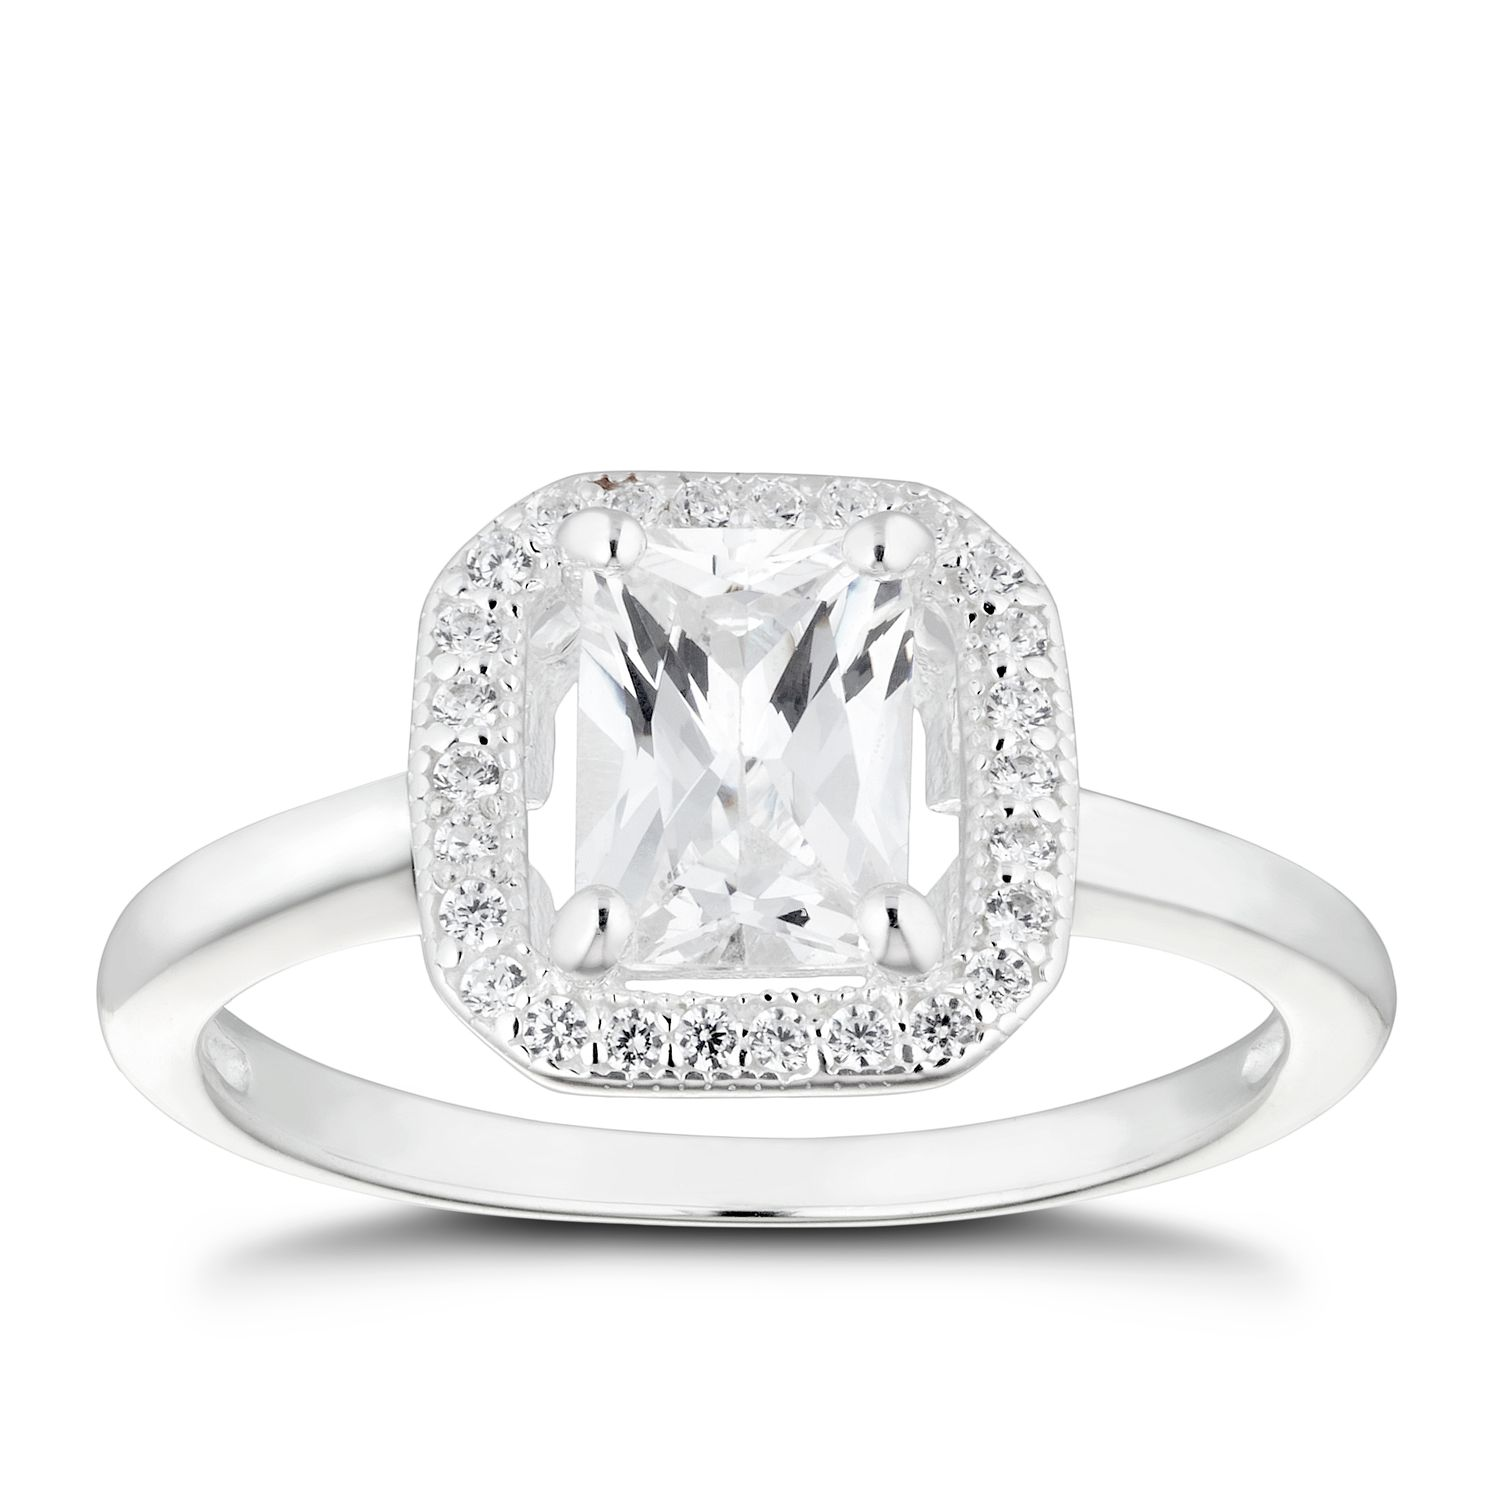 Silver Cubic Zirconia Square Halo Ring - Size N - Product number 4842251